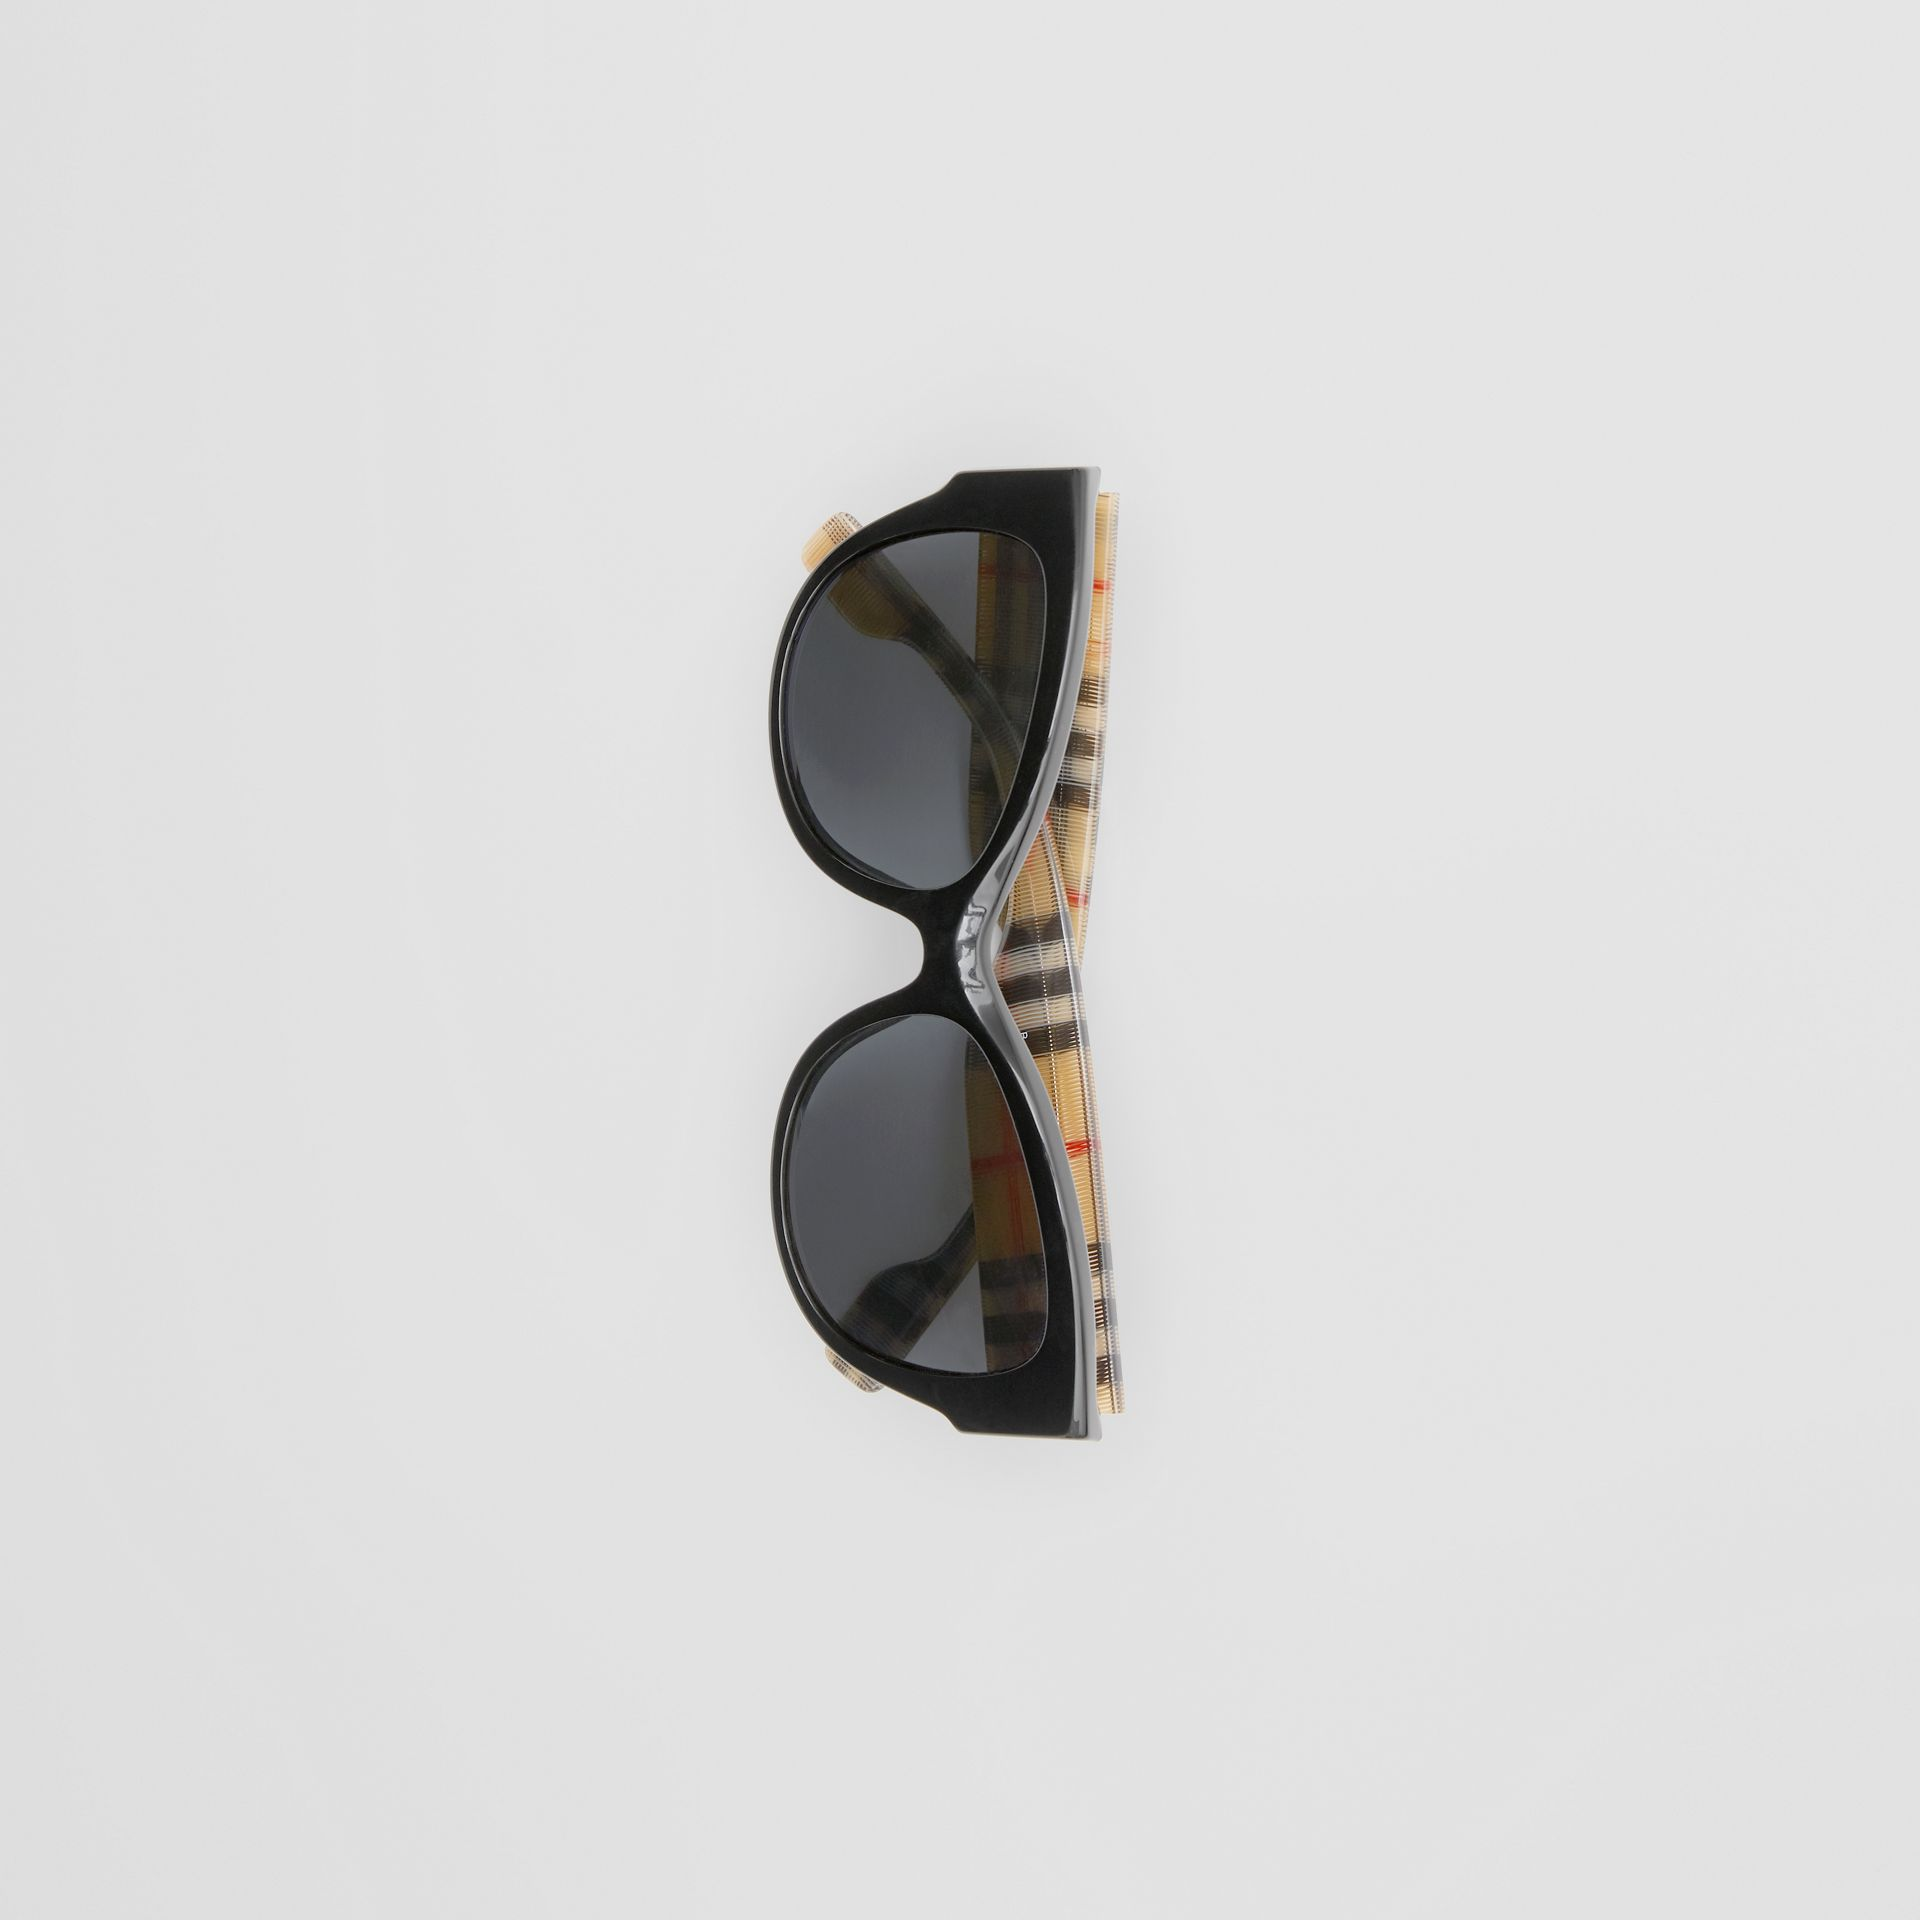 Vintage Check Detail Butterfly Frame Sunglasses in Black / Beige - Women | Burberry Canada - gallery image 3